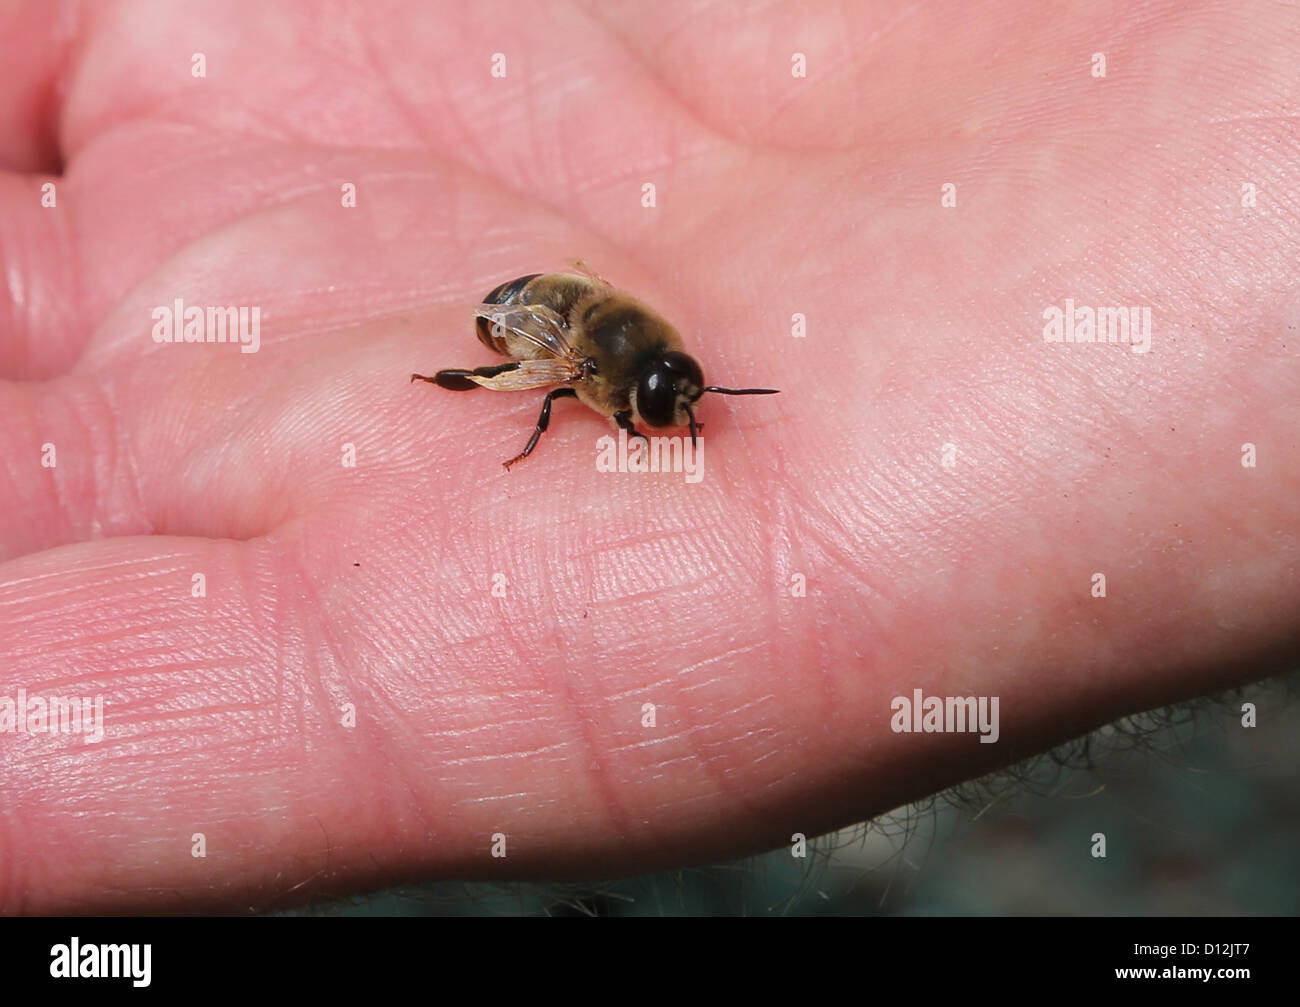 deformed bee with damaged wings a result of the 'Varroa' virus caused by the varroa mite surrey England - Stock Image